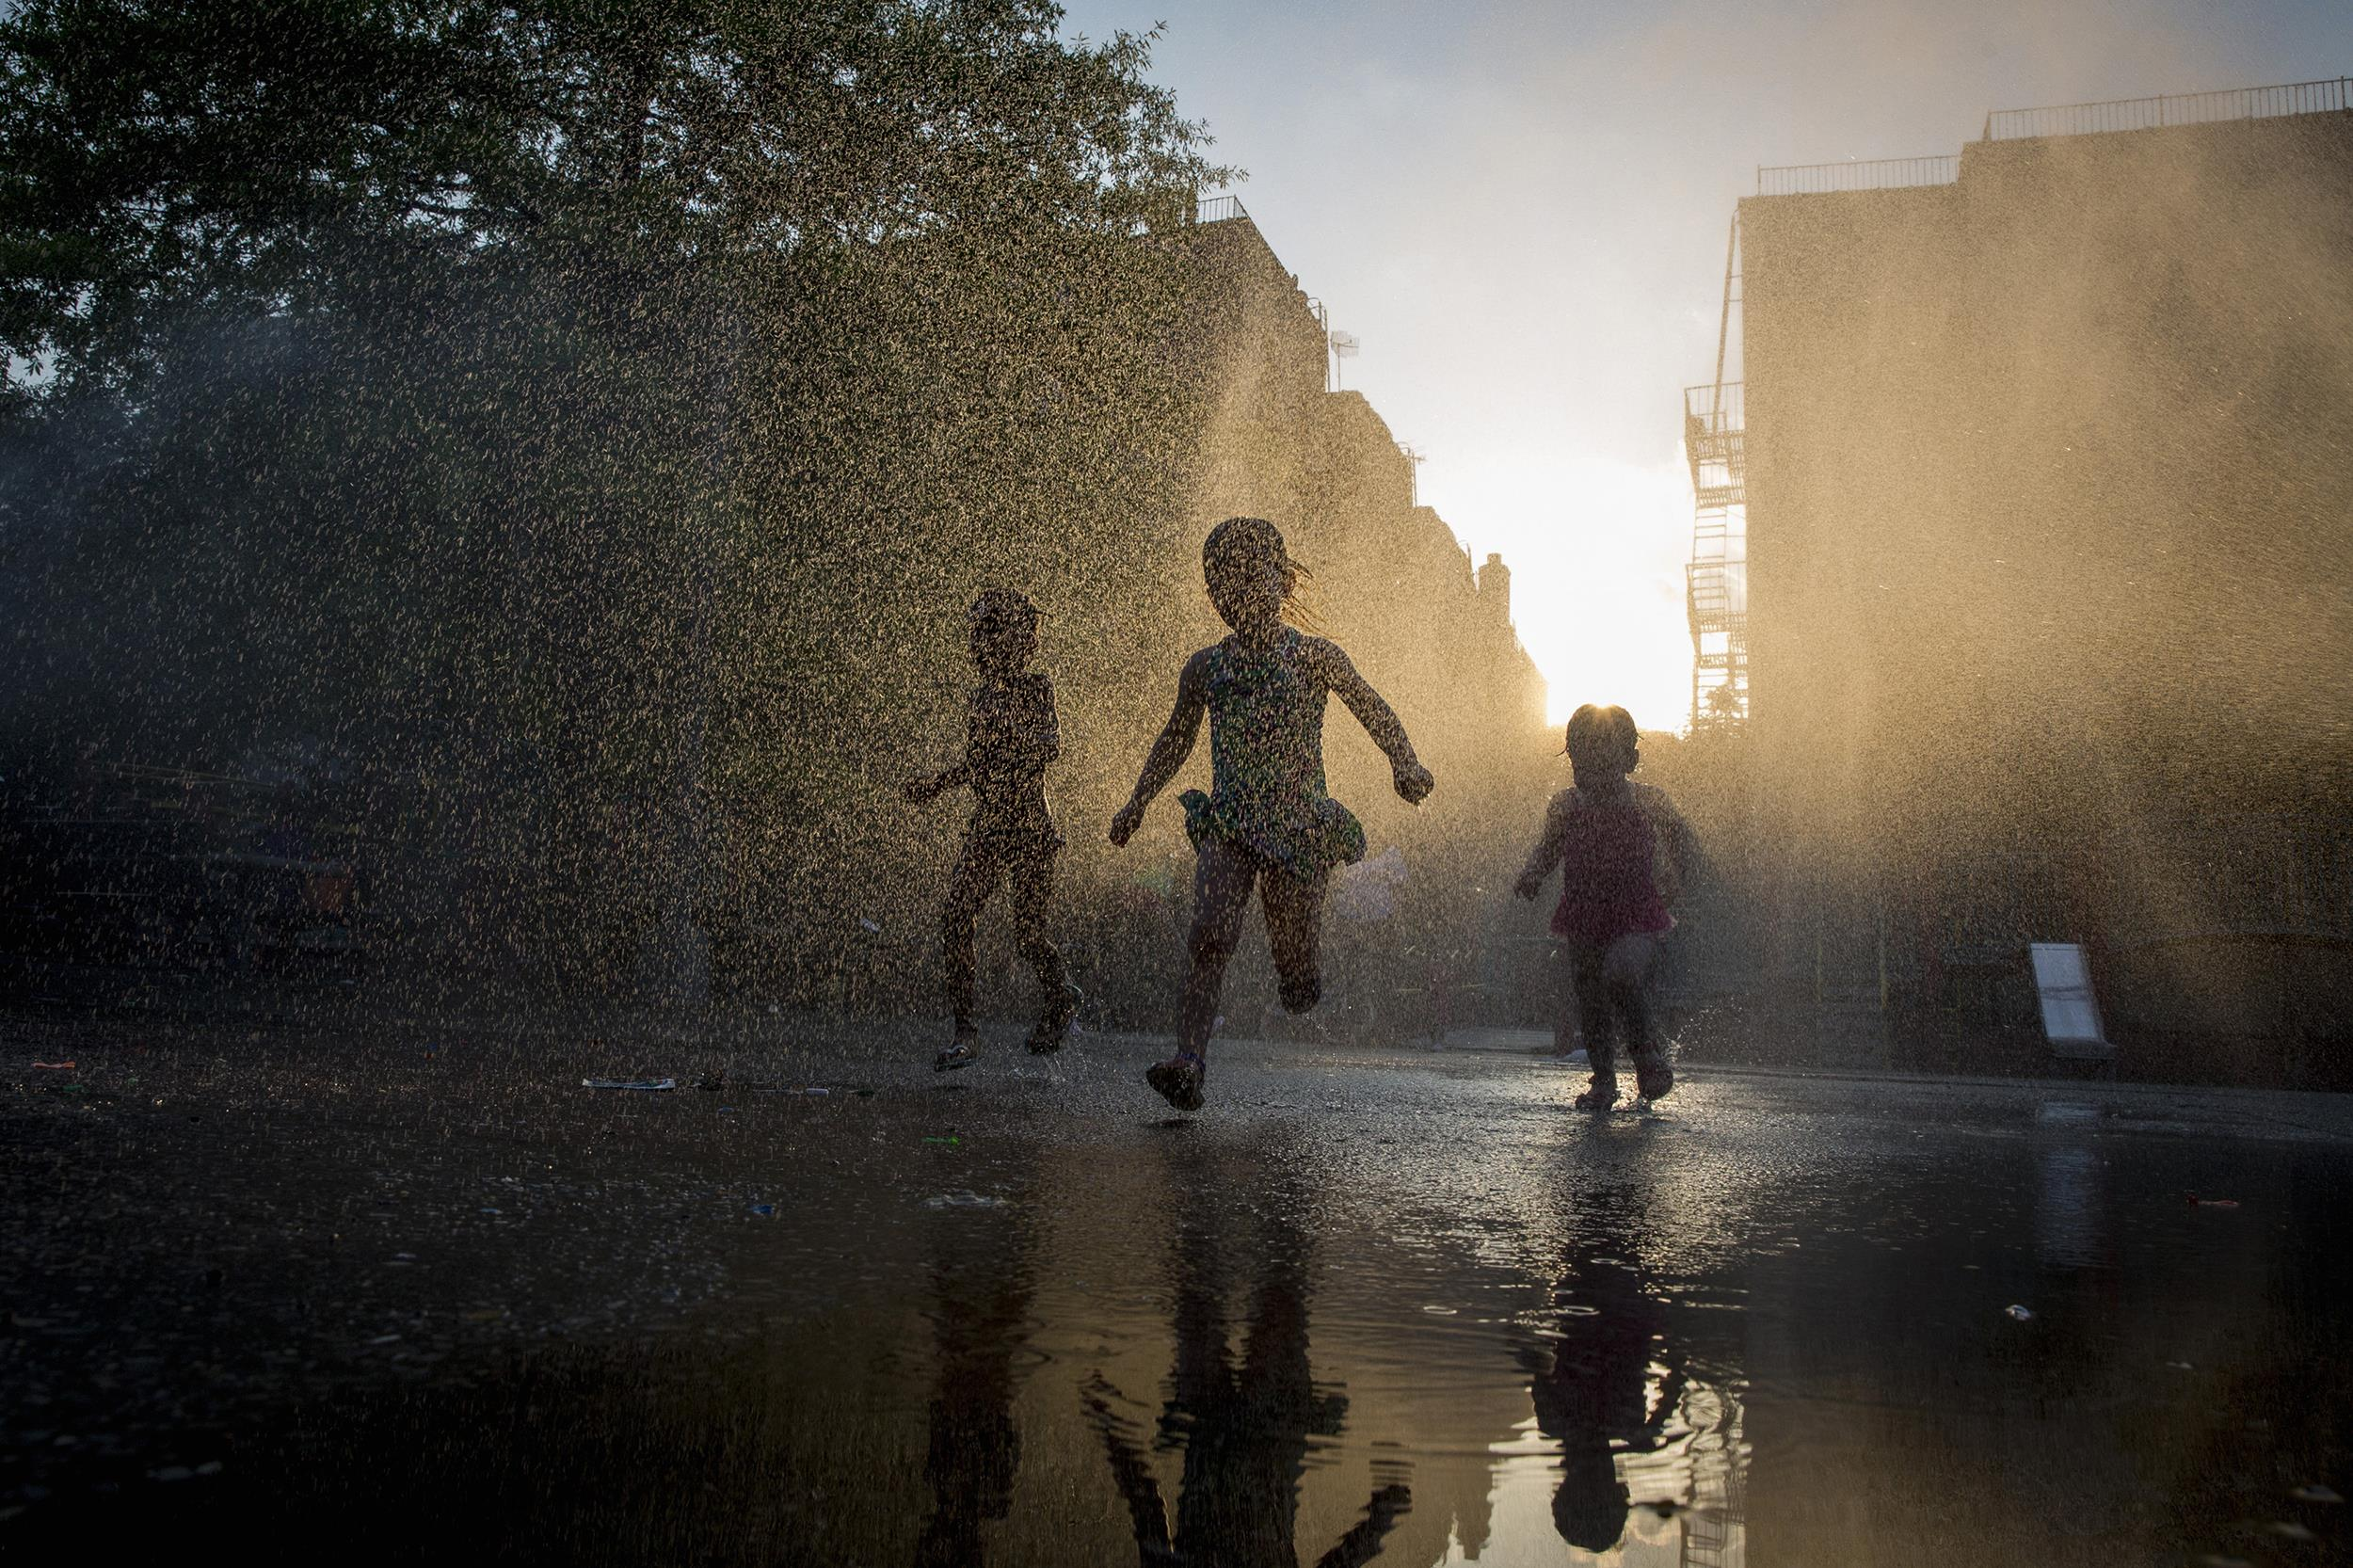 Image: Children play with a sprinkler at a playground in the Park Slope section of the Brooklyn borough of New York